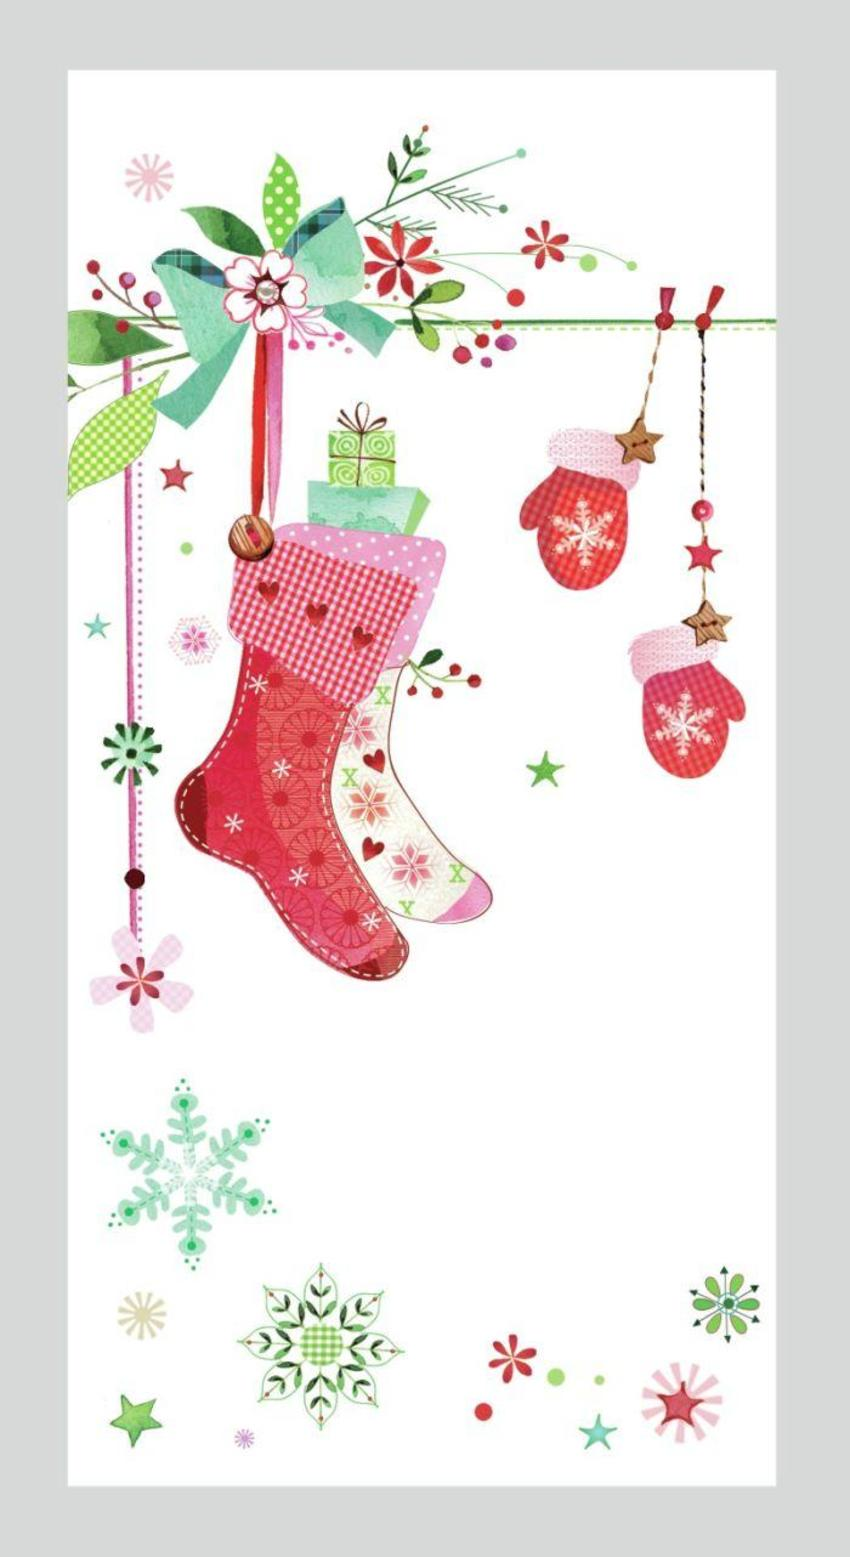 ems stocking.psd